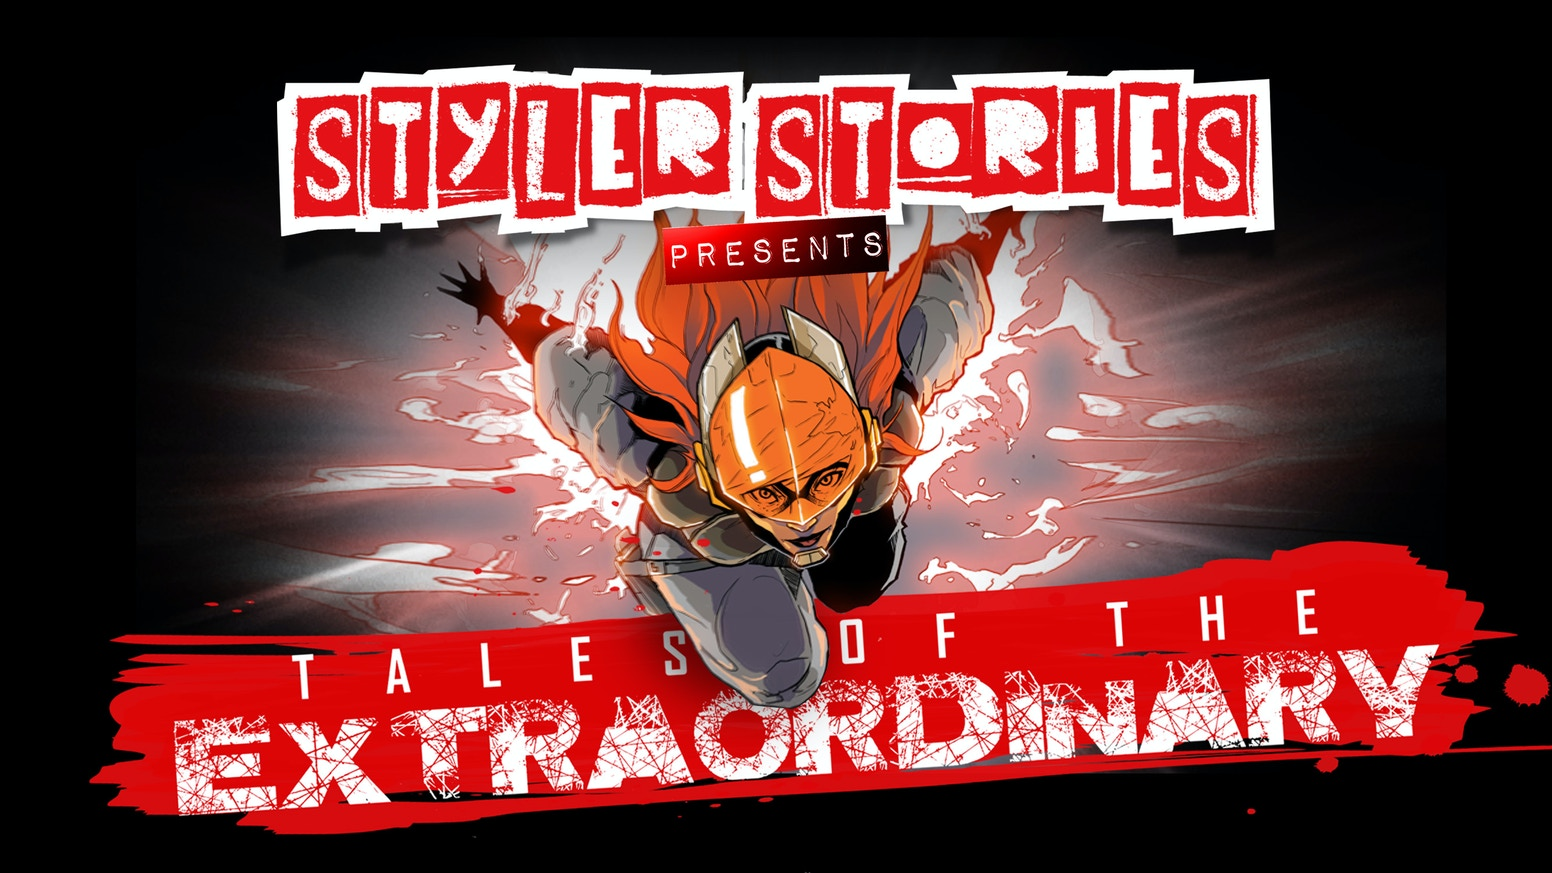 Our premier comic book anthology, featuring 3 stories by artists from around the world. Tales of adventure, suspense, & the superhuman!